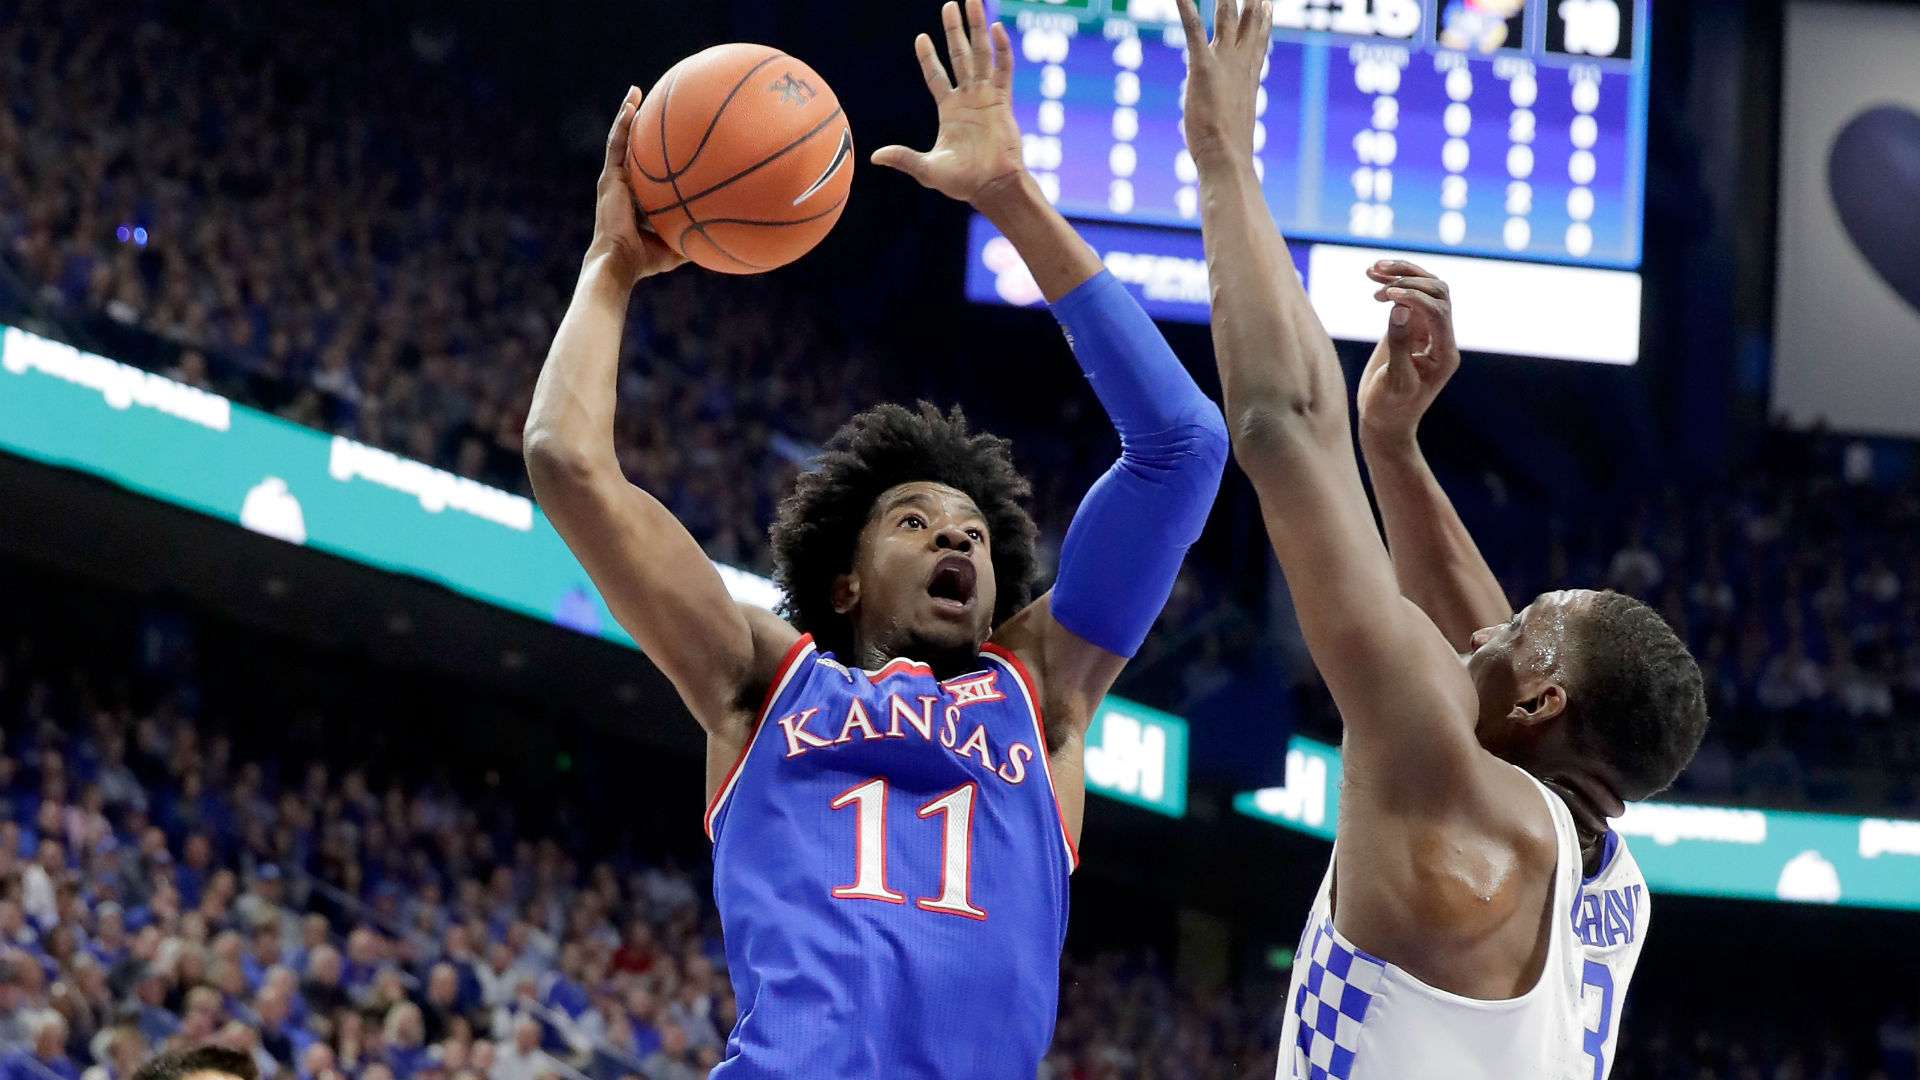 No. 2 Kansas rallies past No. 4 Kentucky 79-73 in Challenge